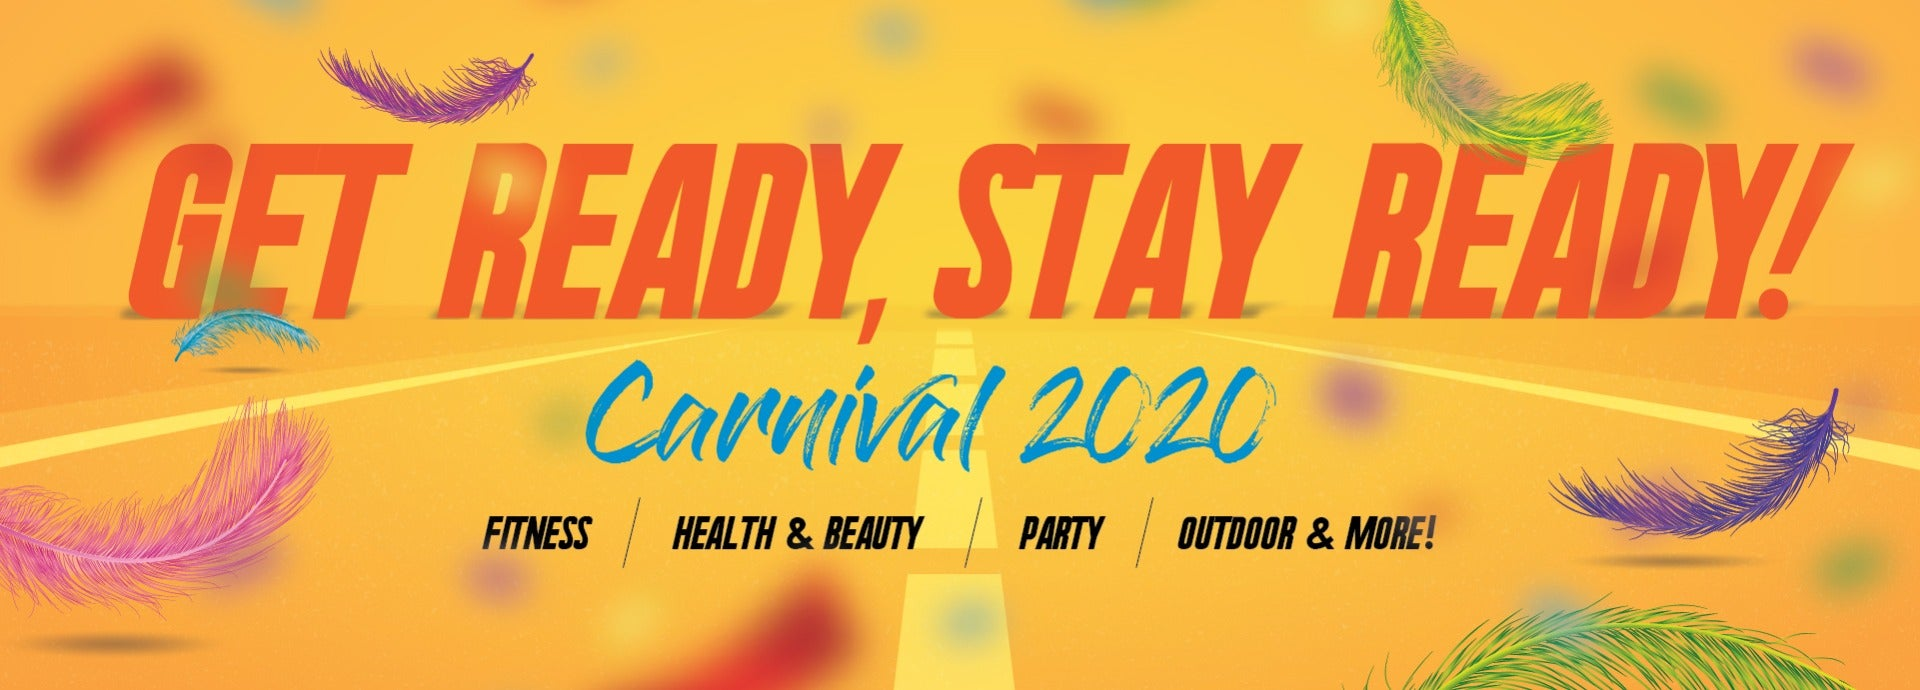 Get Ready for Carnival